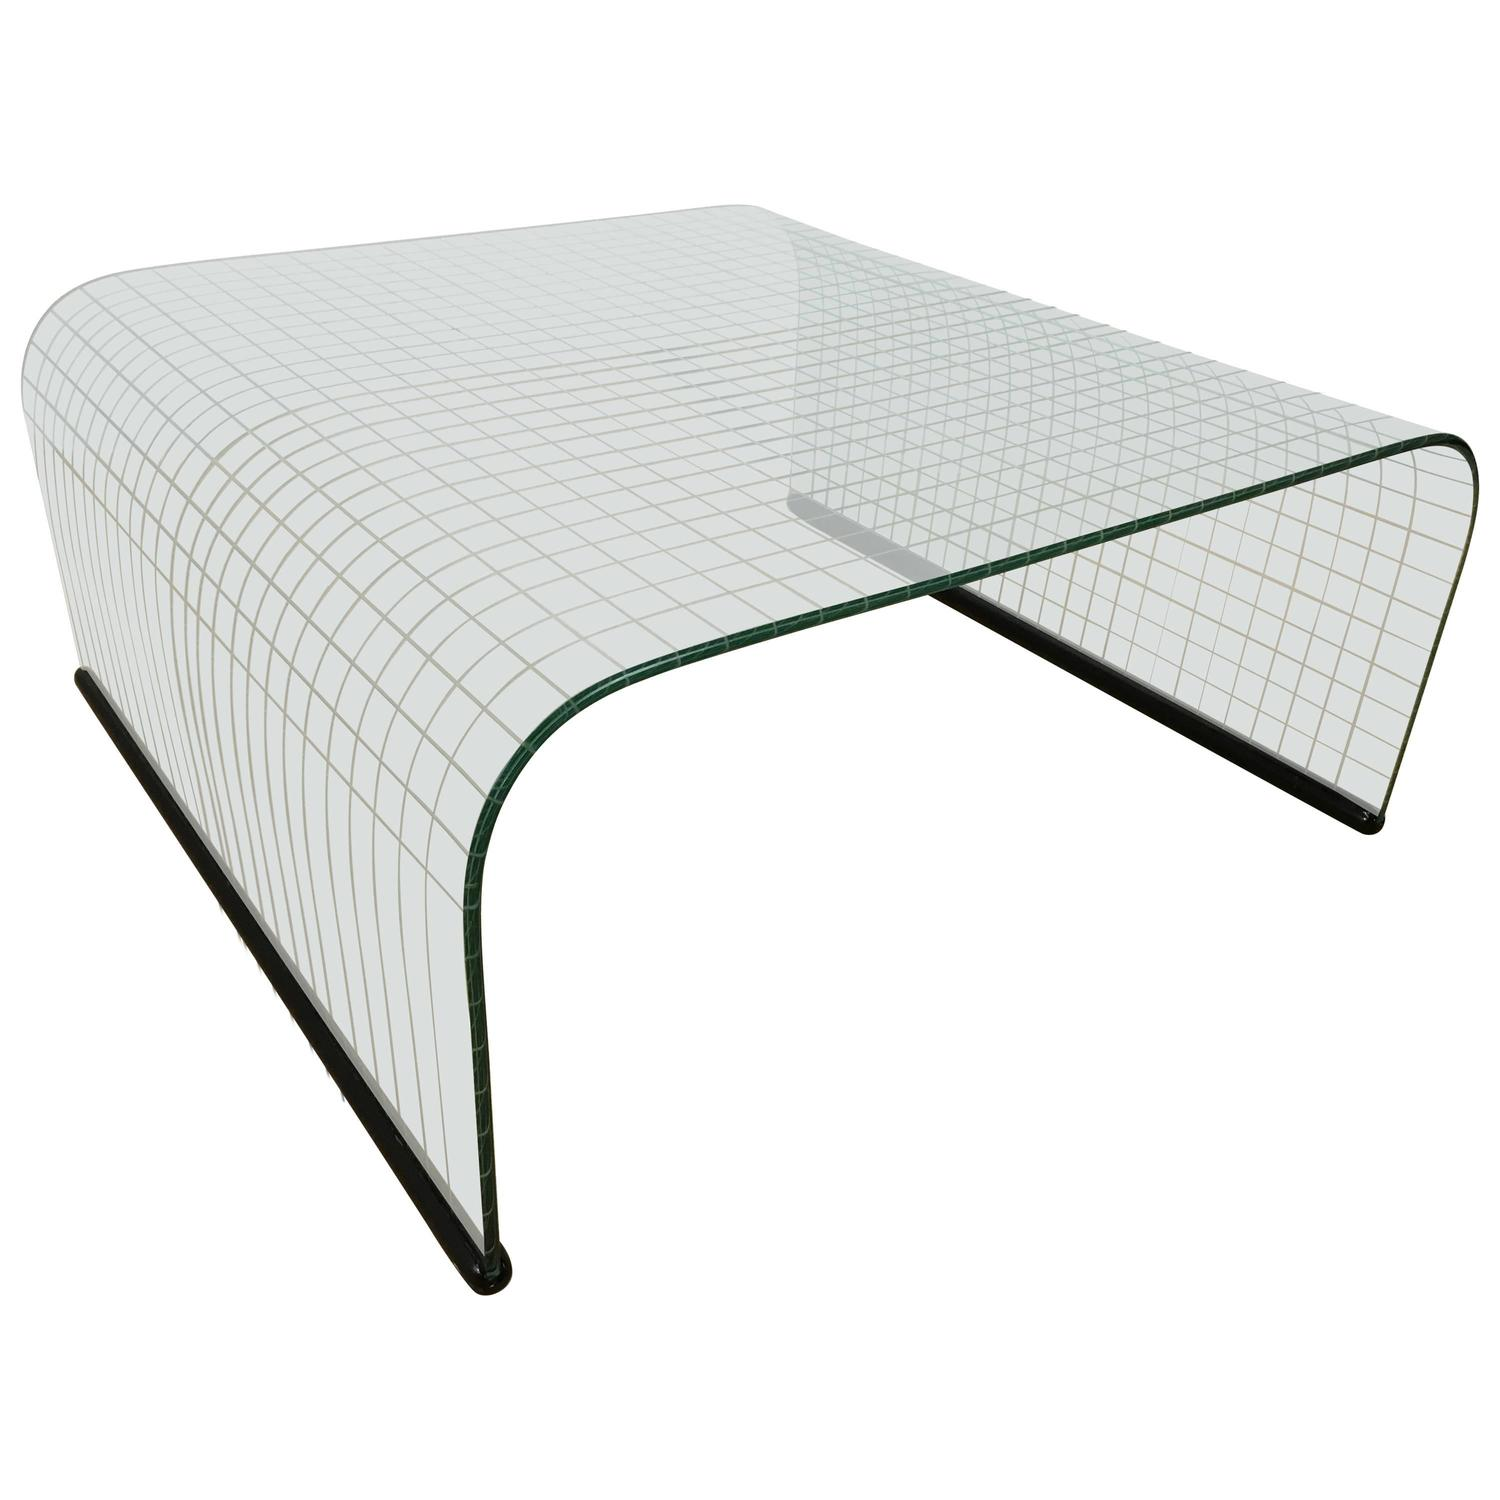 Contemporary Modern Curved Glass End Table For Sale at 1stdibs